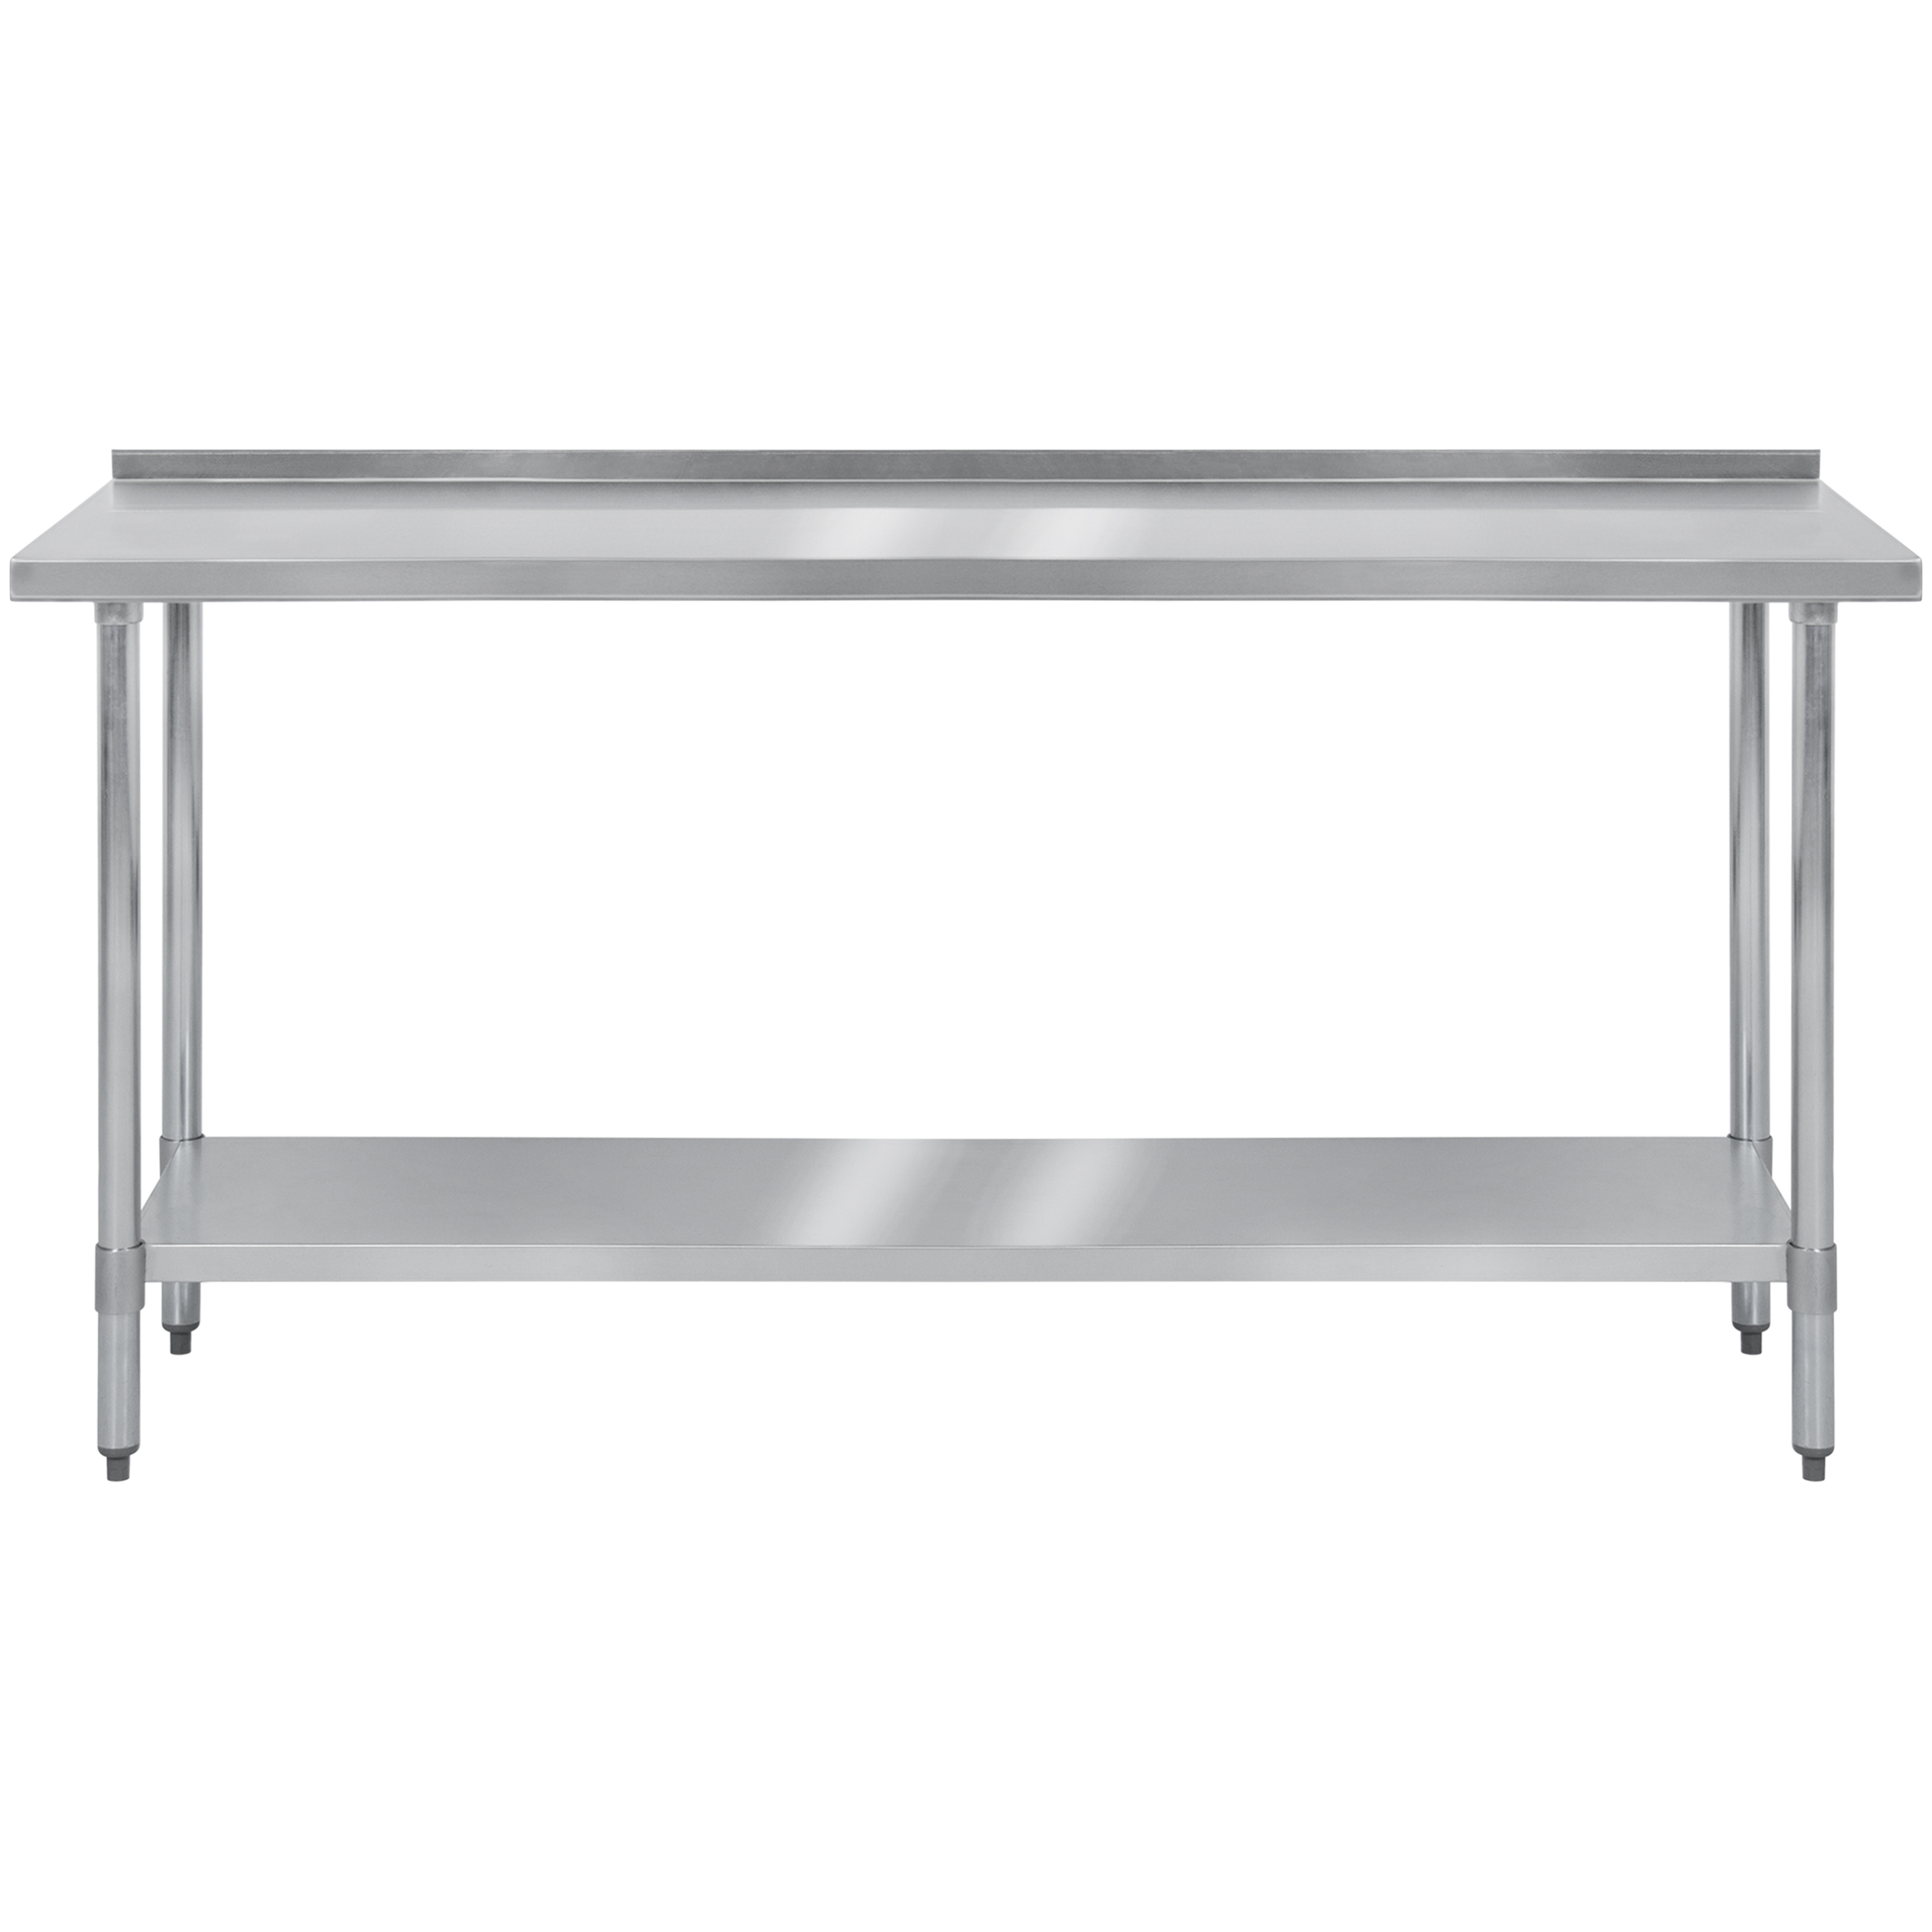 72 Quot X 24 Quot Stainless Steel Work Prep Table W Backsplash